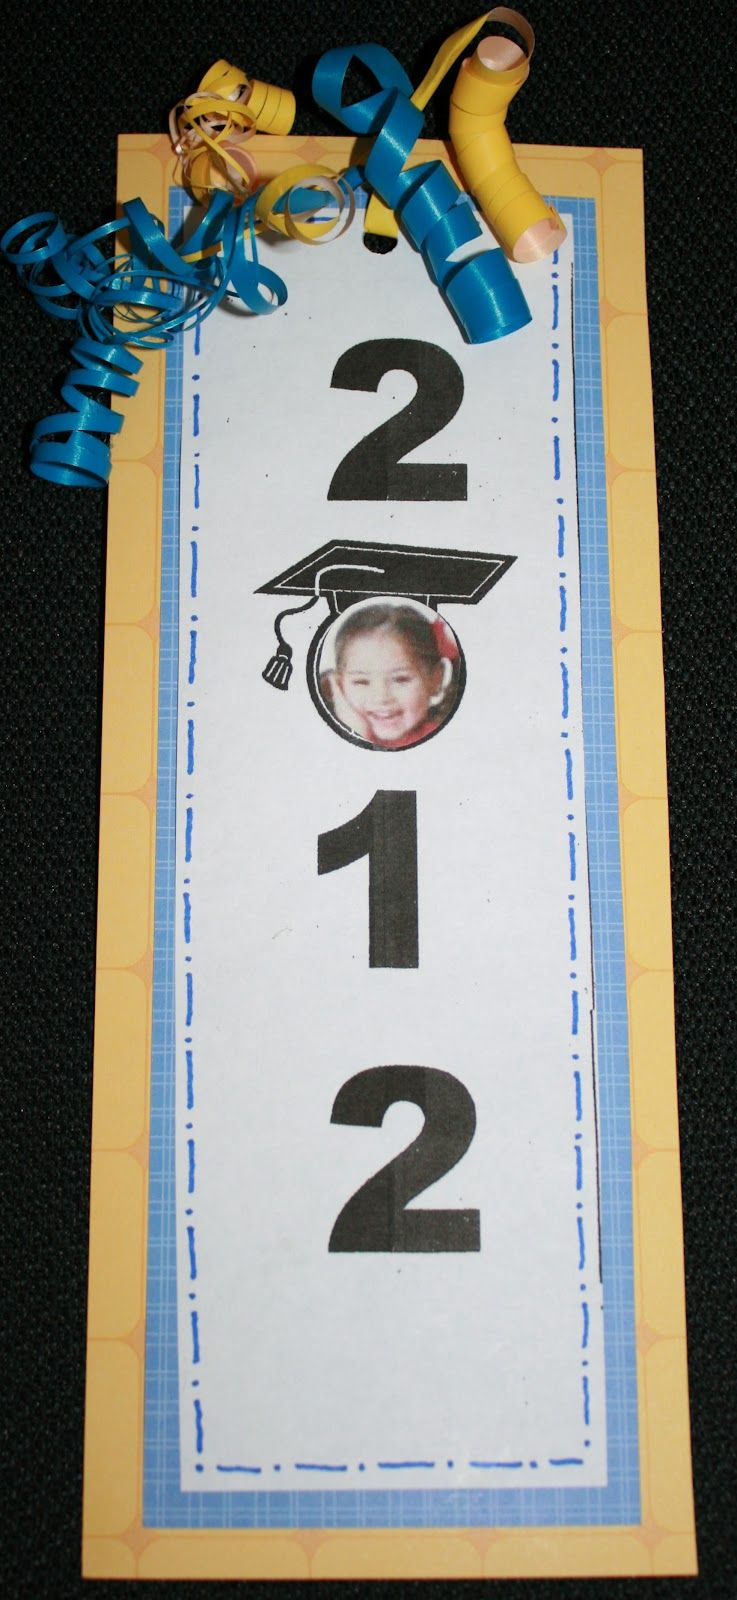 Preschool graduation on pinterest preschool graduation gifts kindergarten graduation and - Kindergarten graduation decorations ...